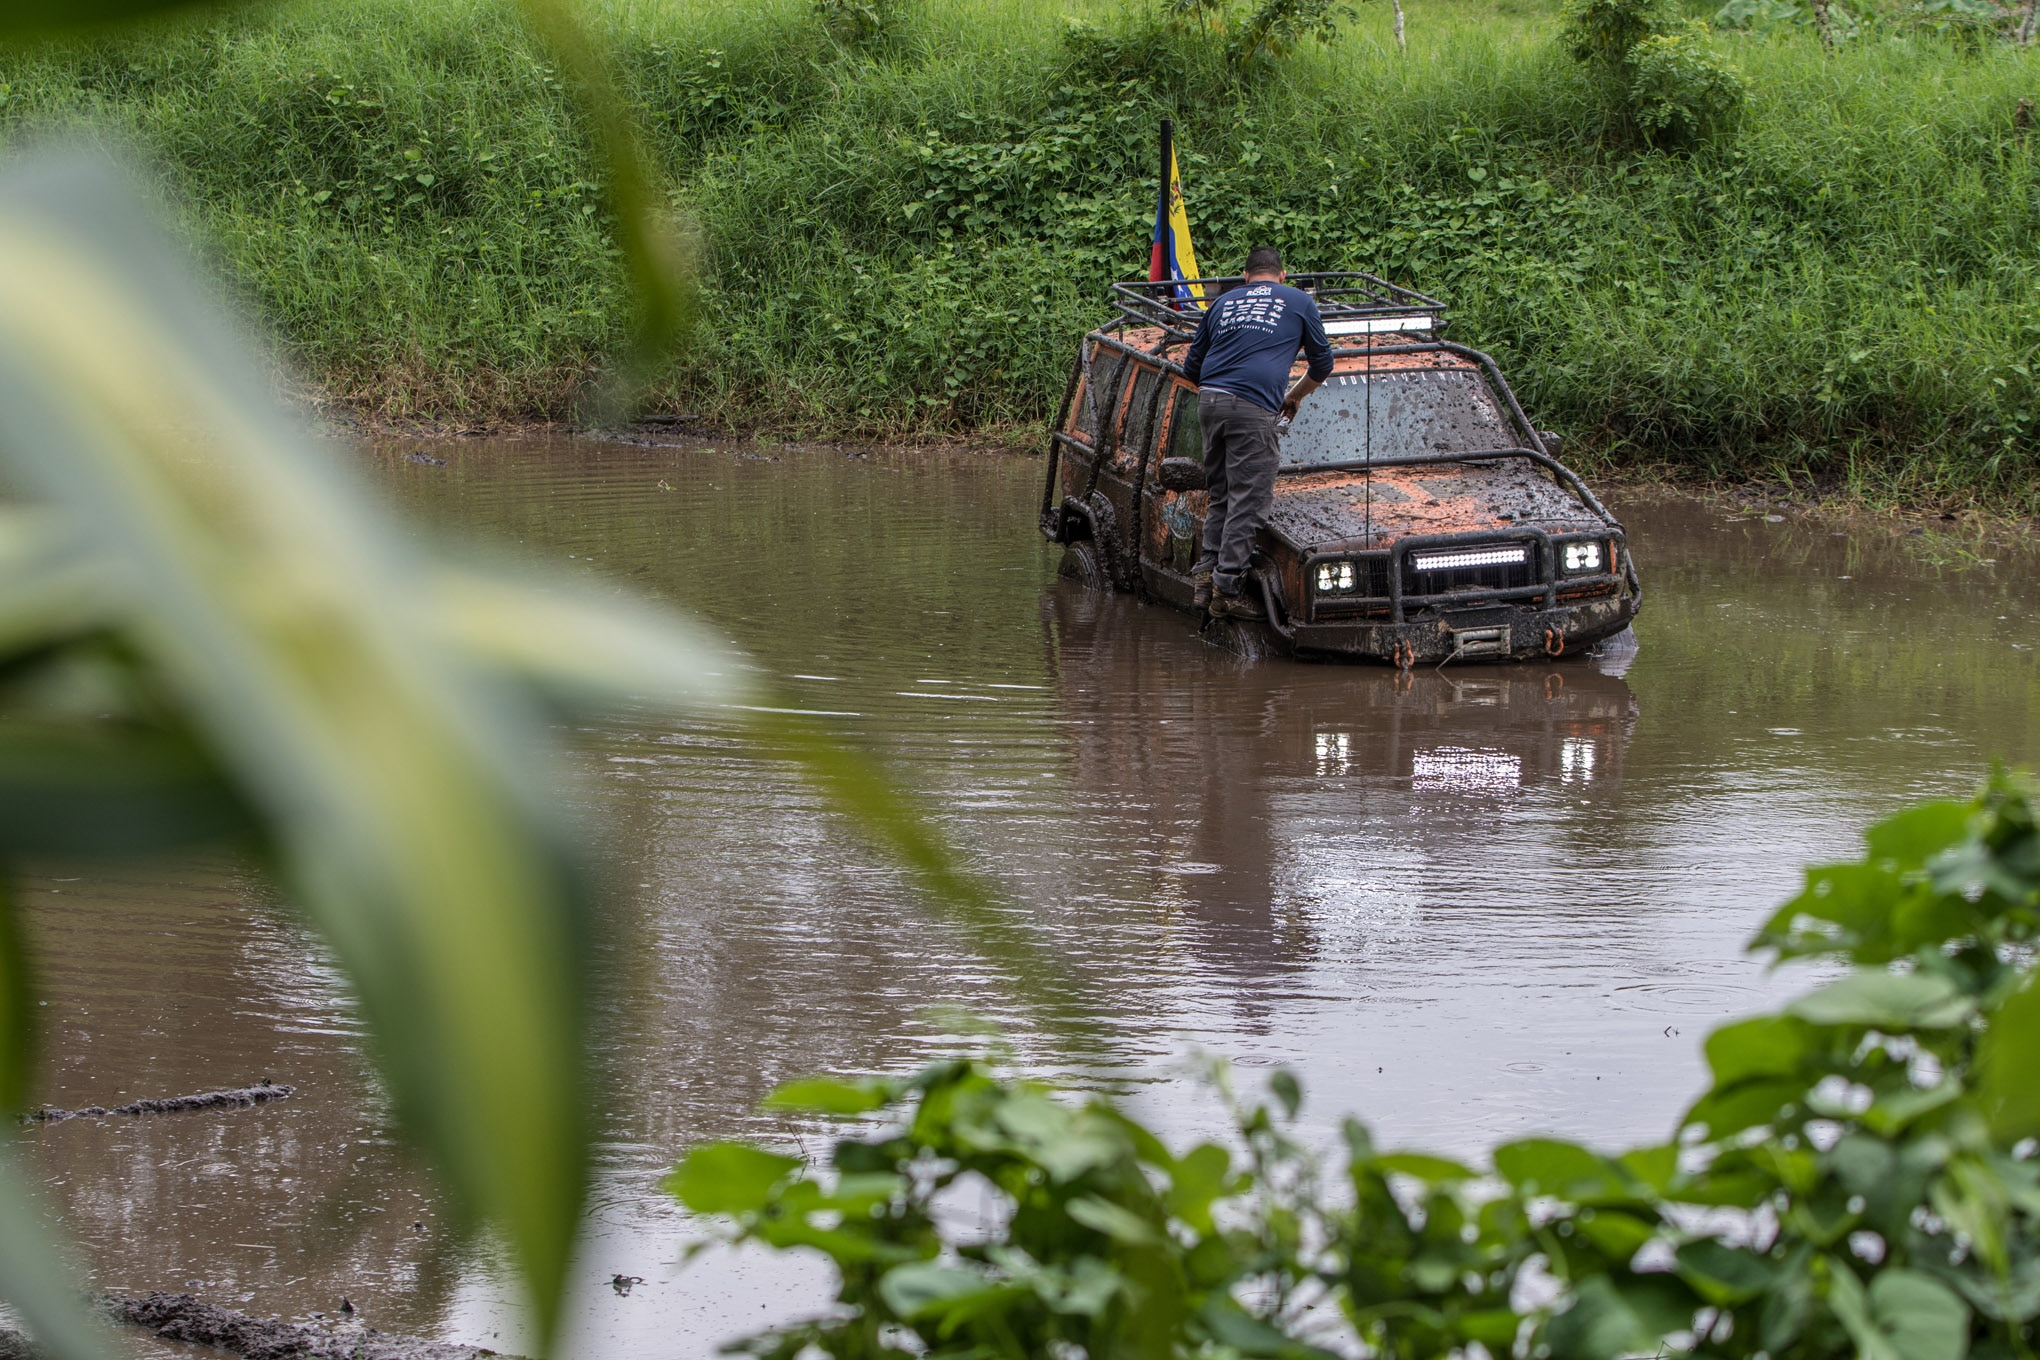 Cherokees can be used for everything from hauling the family to desert racing to rockcrawling, but this is the first time we have seen an XJ used as a boat! Jota Mauco saw this pond and just had to drive across it (or at least halfway across it).